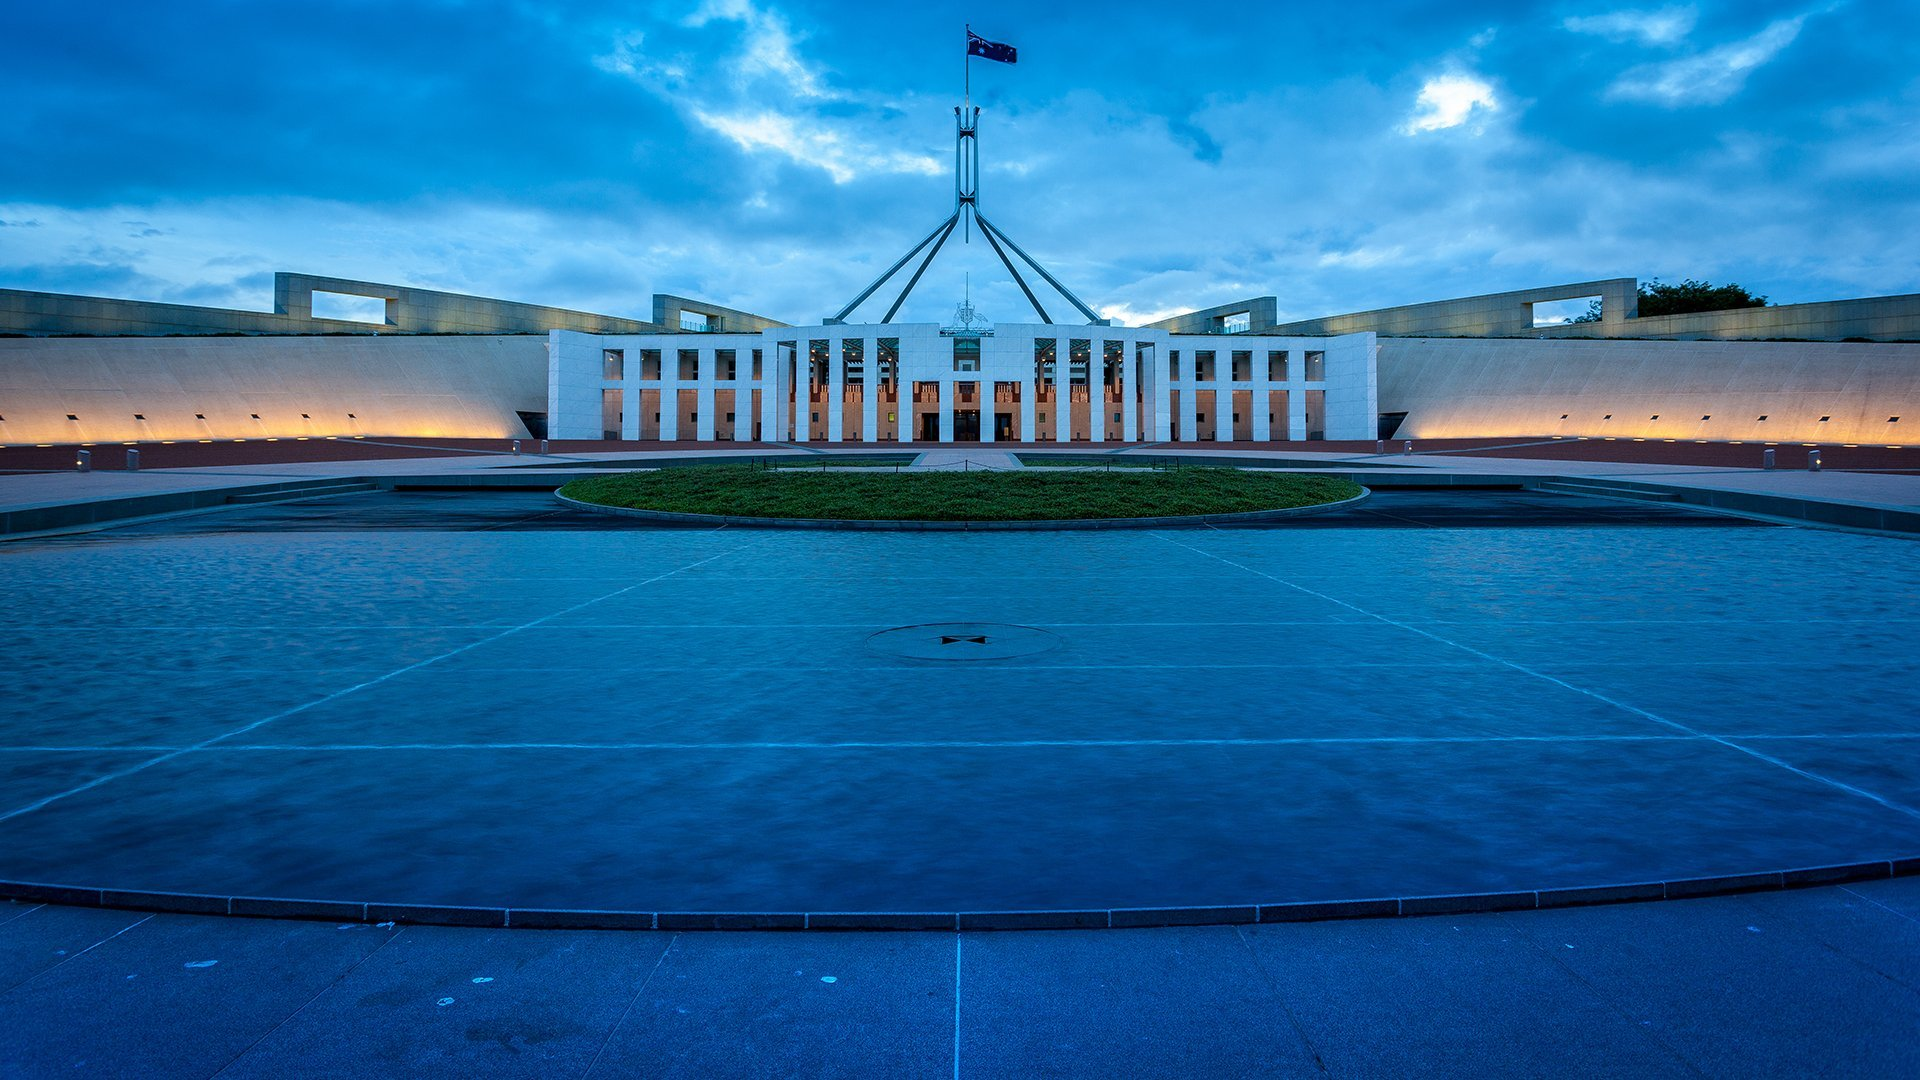 Before-Parliament House Canberra